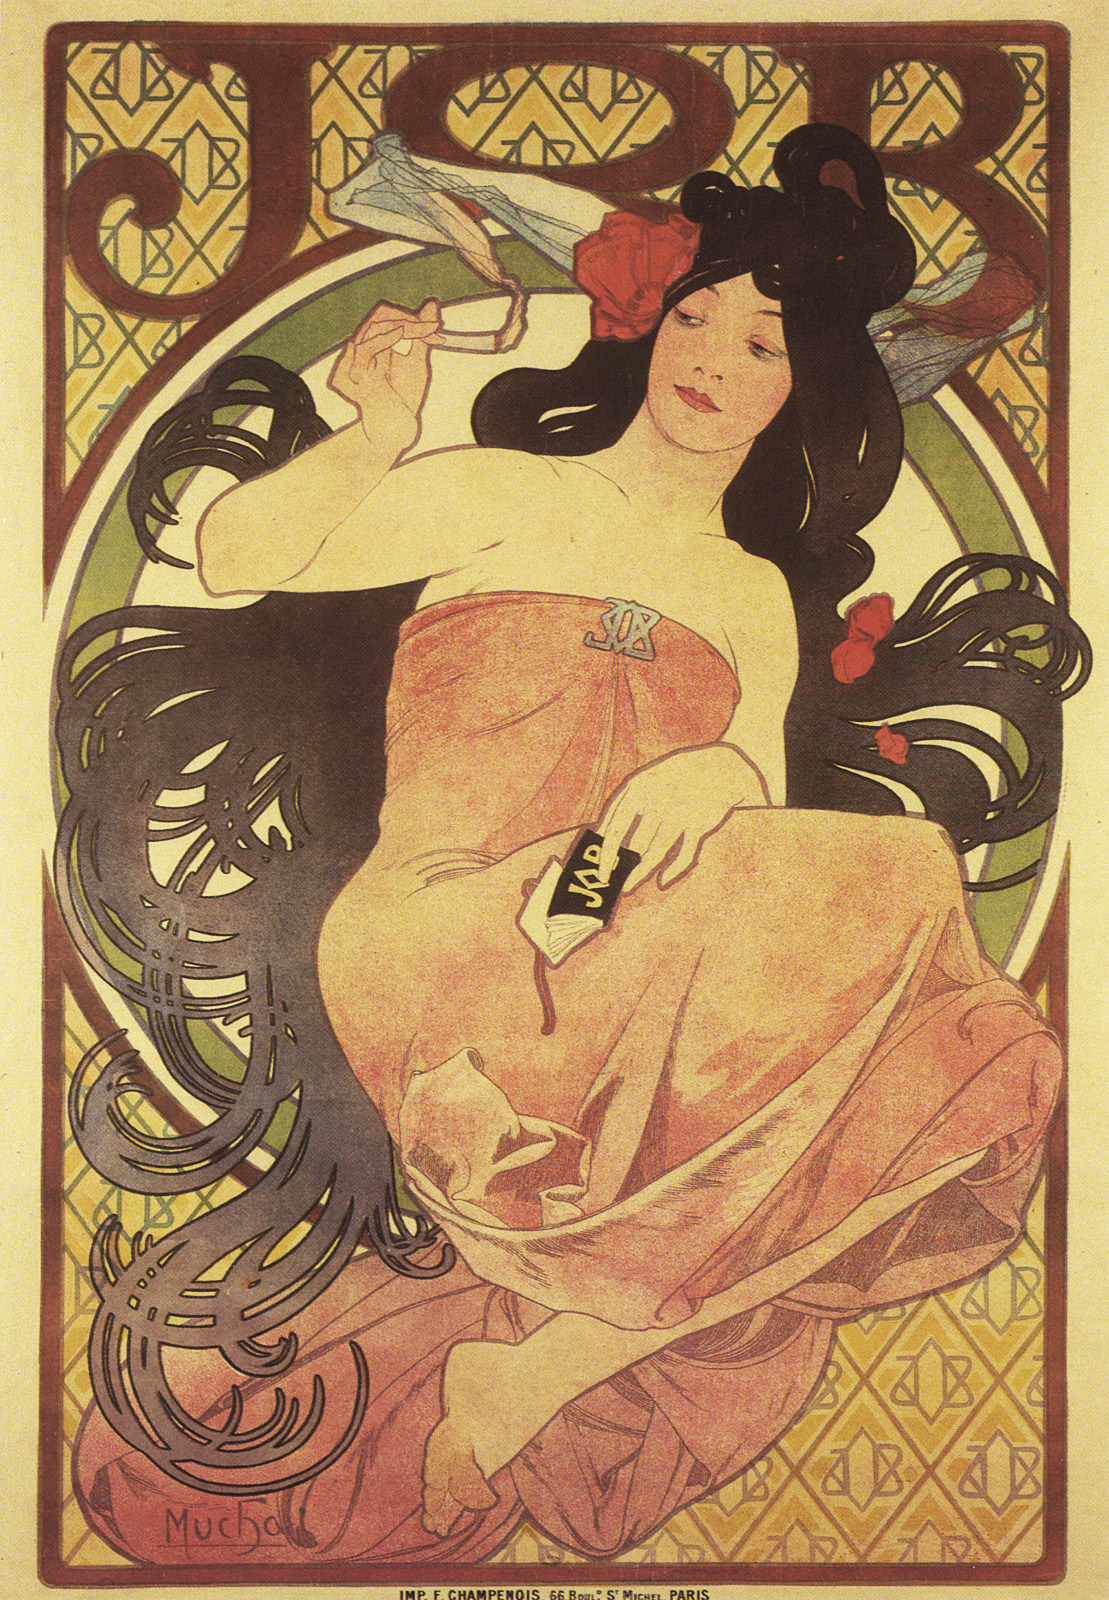 alphonse mucha art nouveau essay Shop for art nouveau alphonse mucha on etsy, the place to express your creativity through the buying and selling of handmade and vintage goods.